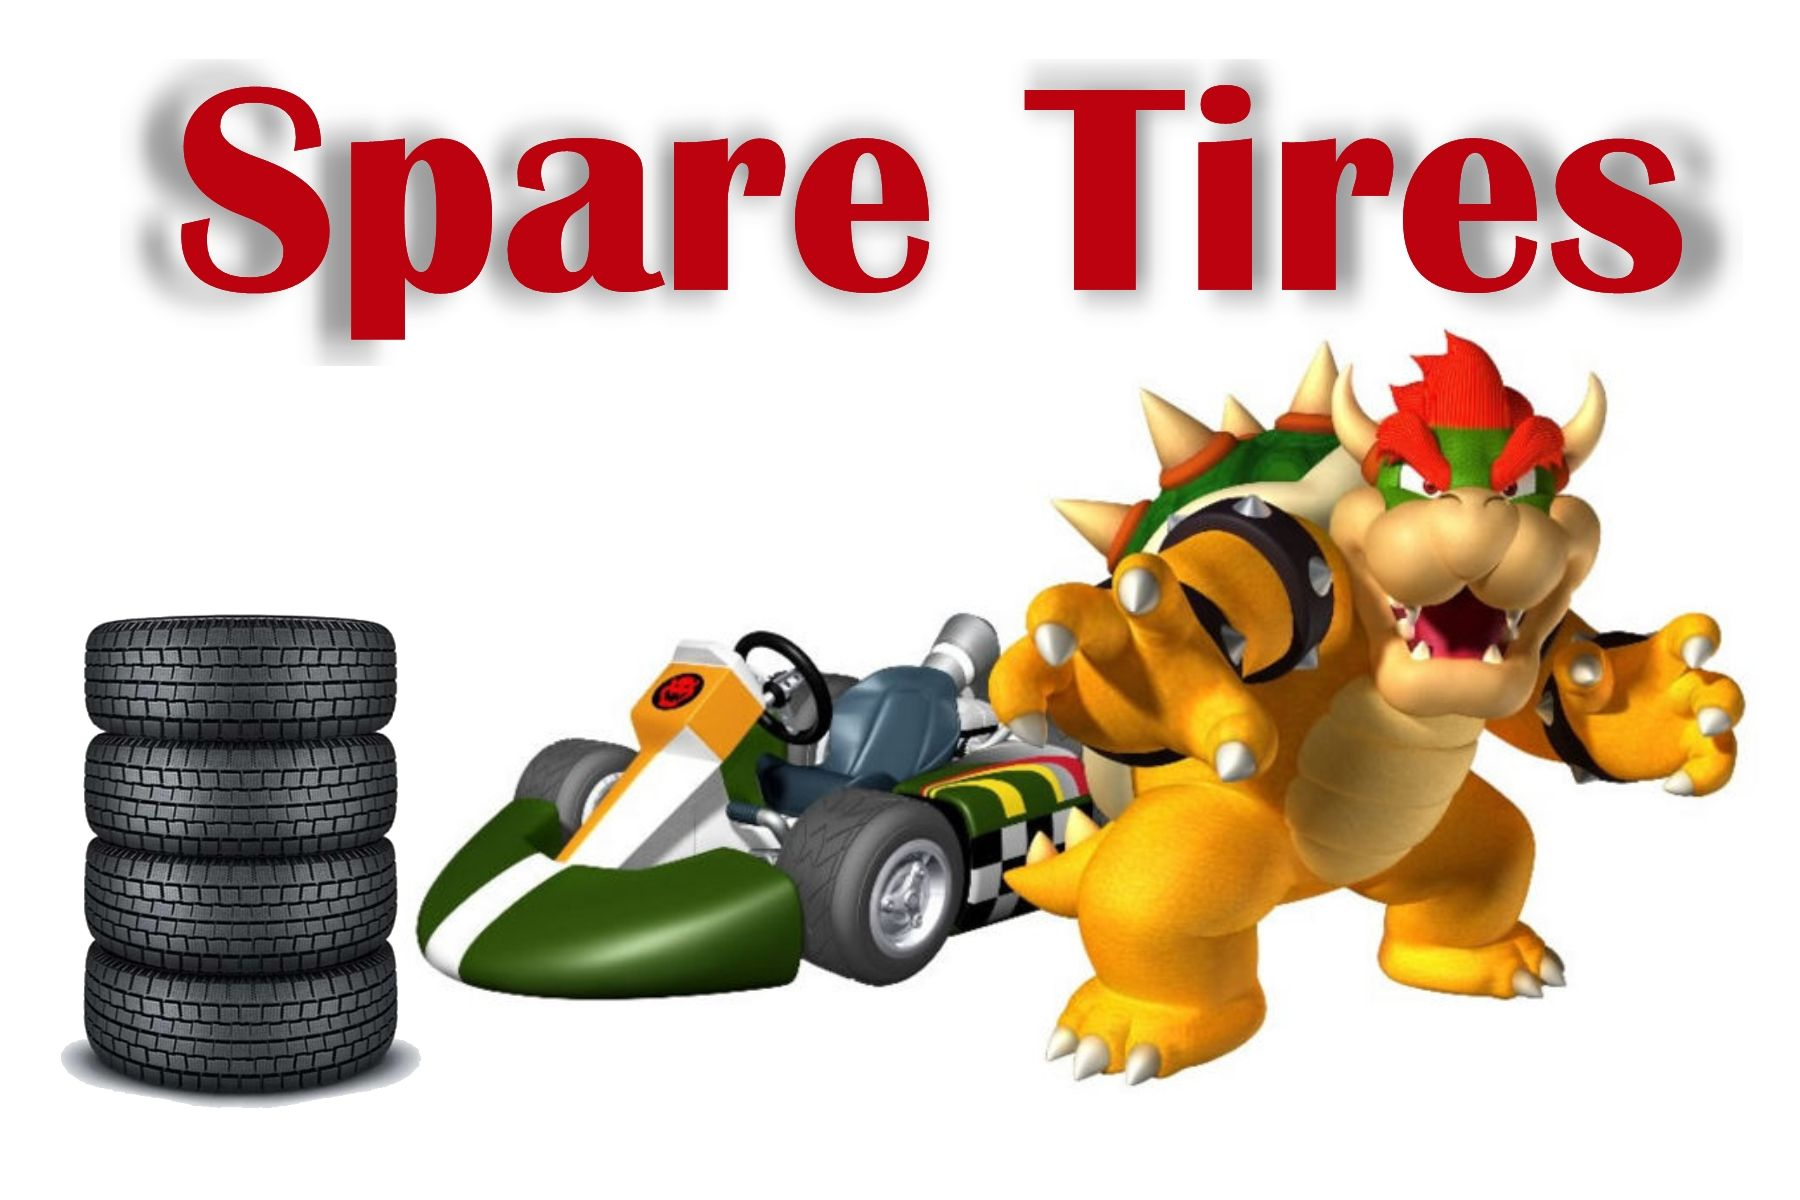 Mario Kart -- Spare Tires Label    I printed this in a 4X6 and put it in a frame to label the canister full of oreo cookies on the Power Up Buffet!